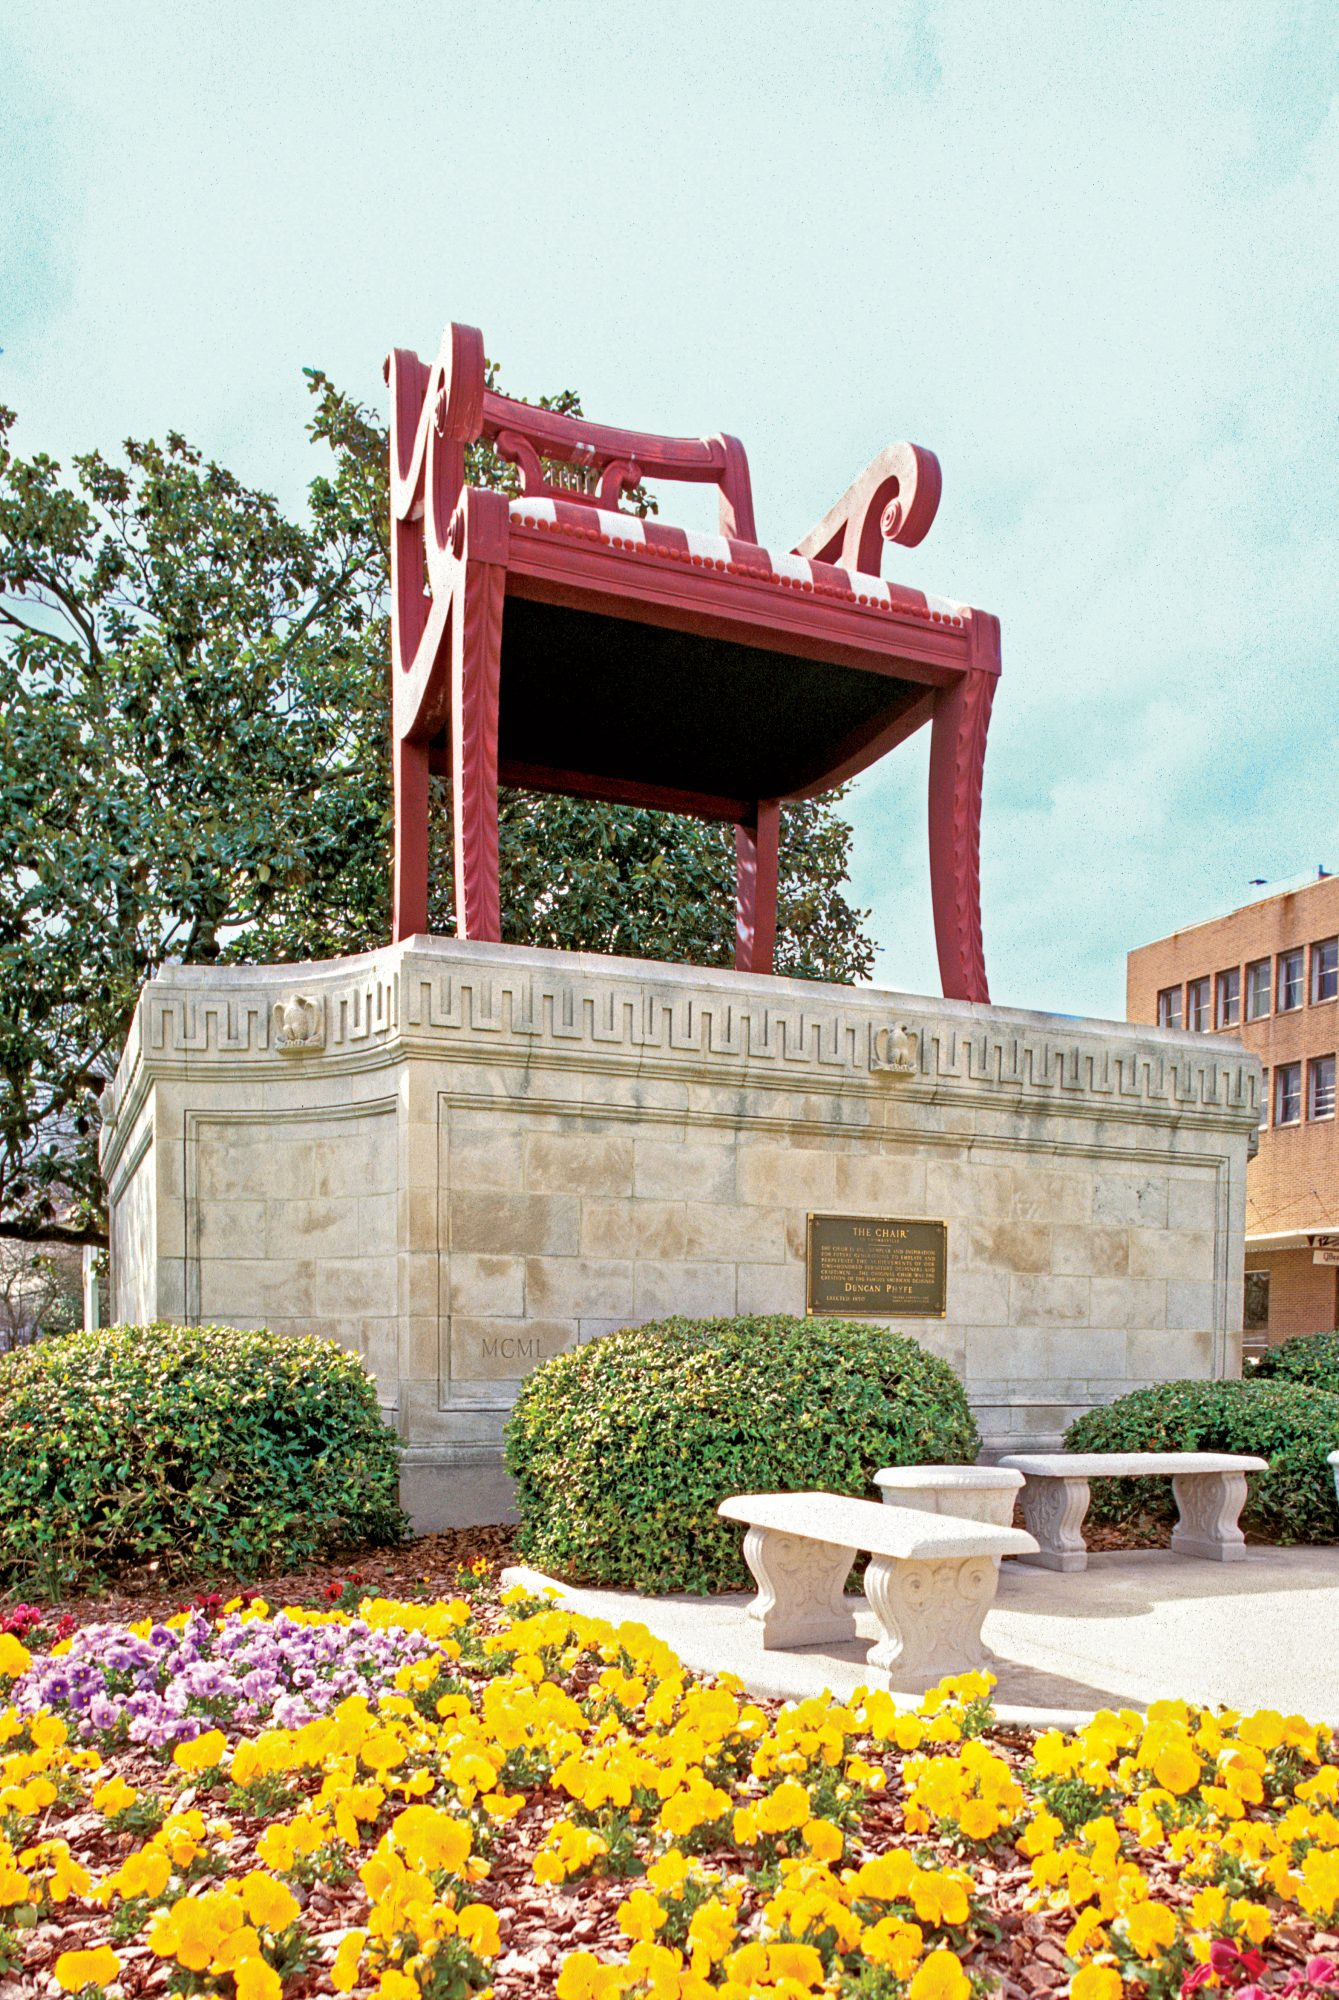 World's Largest Chair in Thomasville, NC